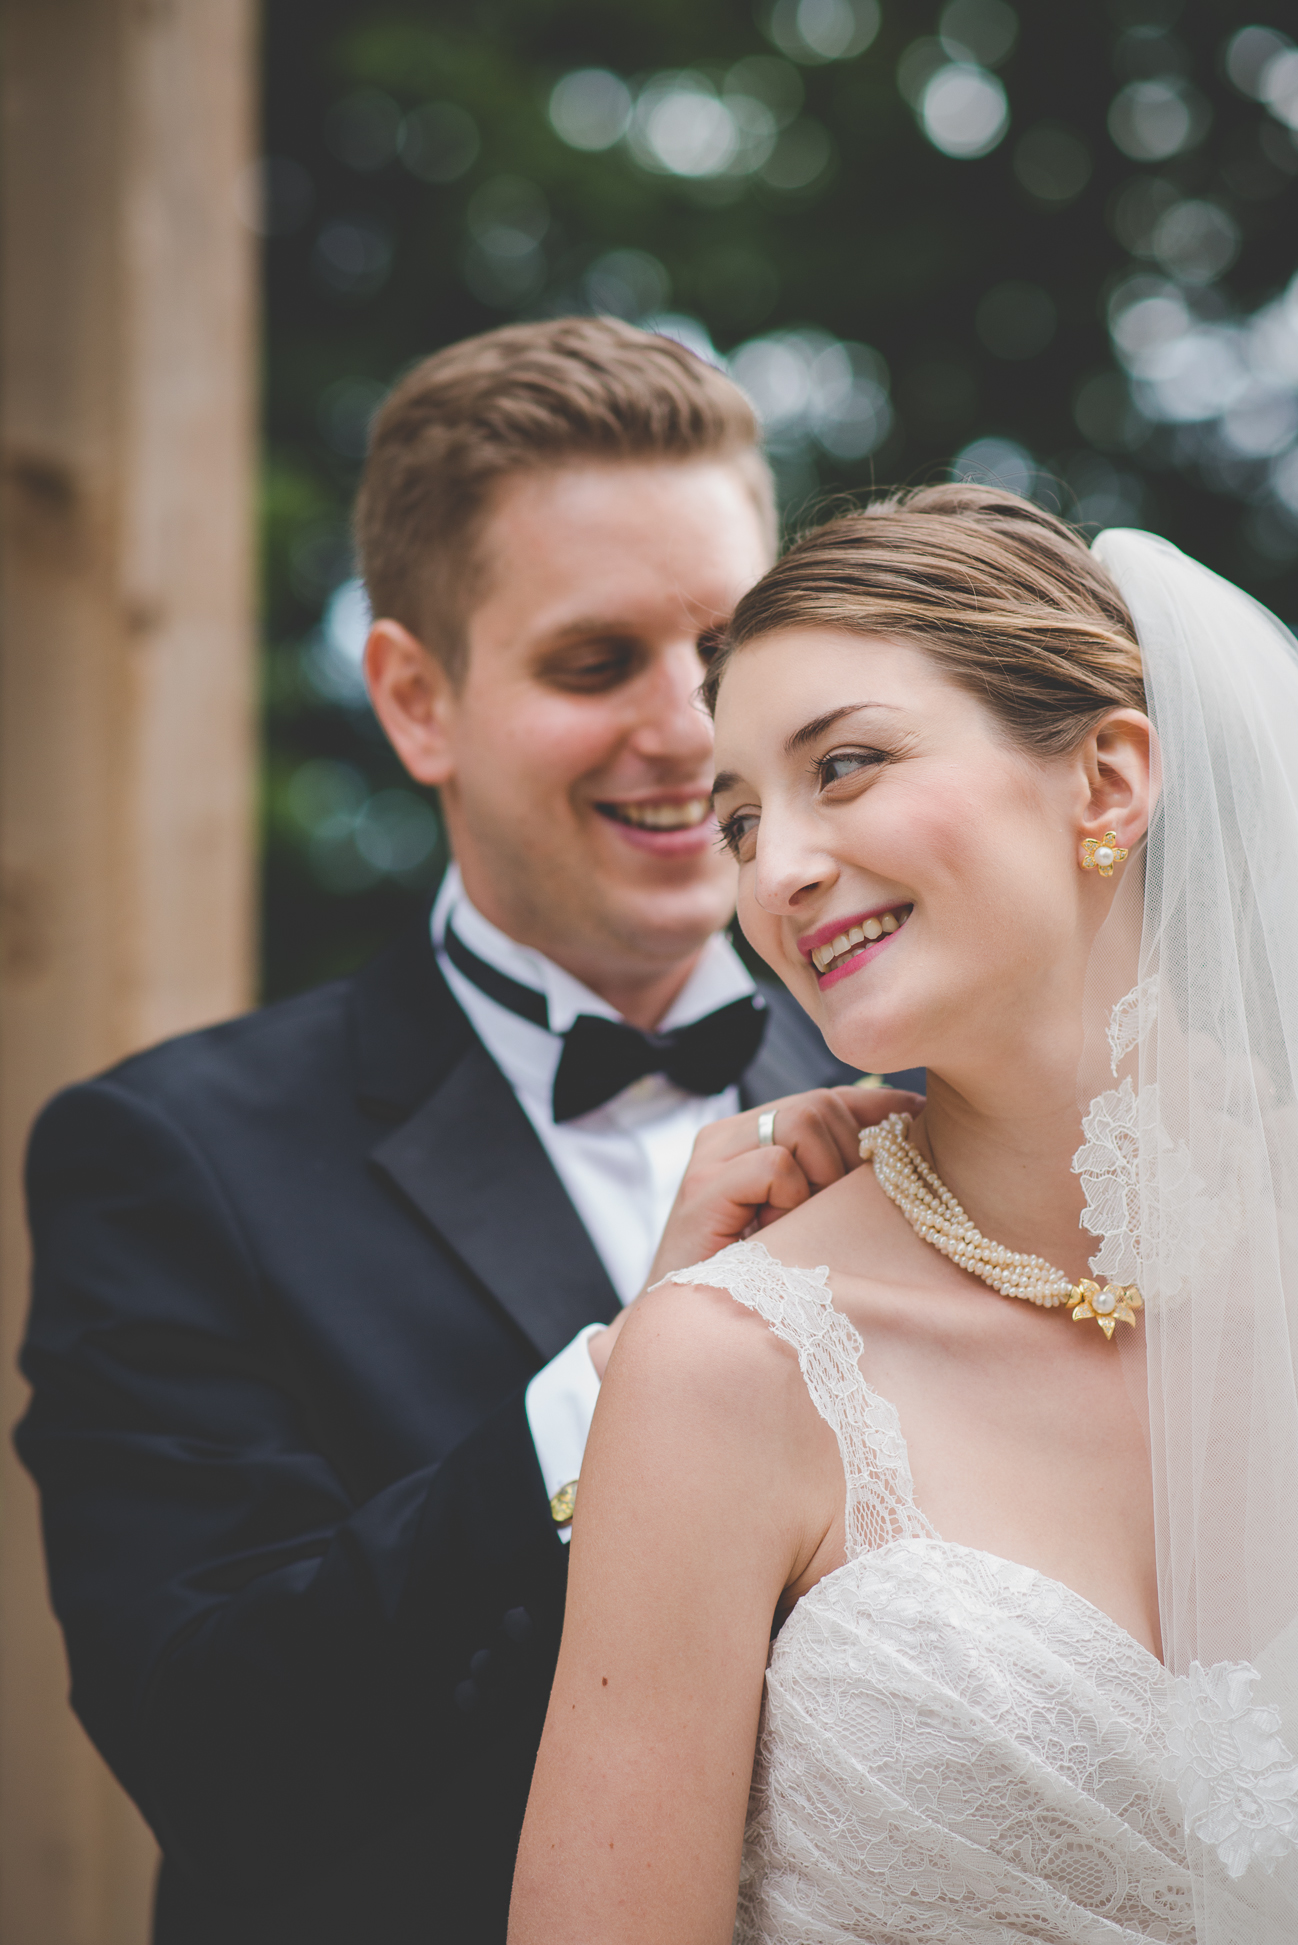 groom helps bride put on pearl necklace designed by mother of the groom